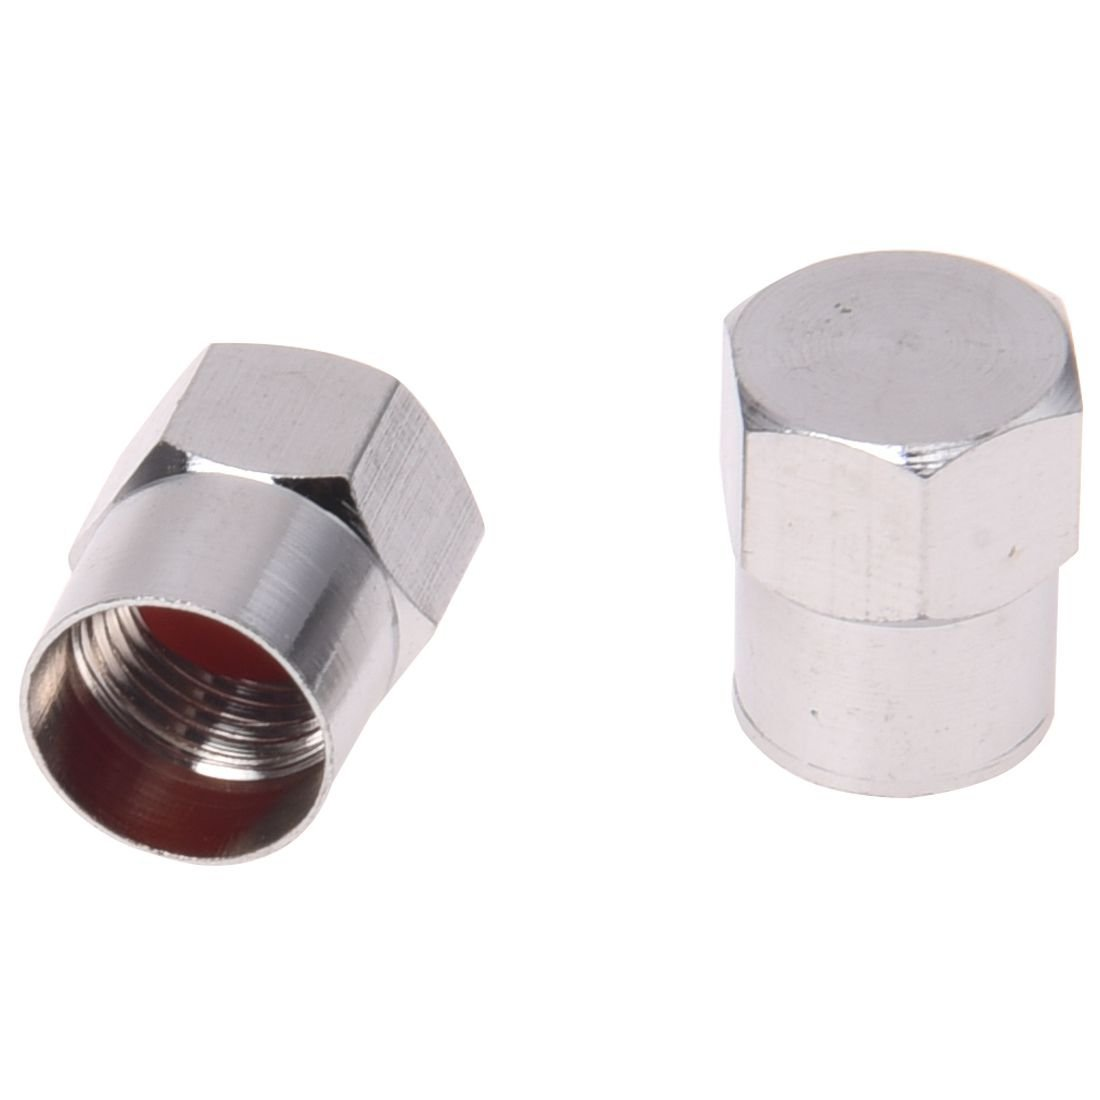 SODIAL(R) 5 Quality Chrome Valve Dust Caps Car / Bike Tube - Tyre 042473